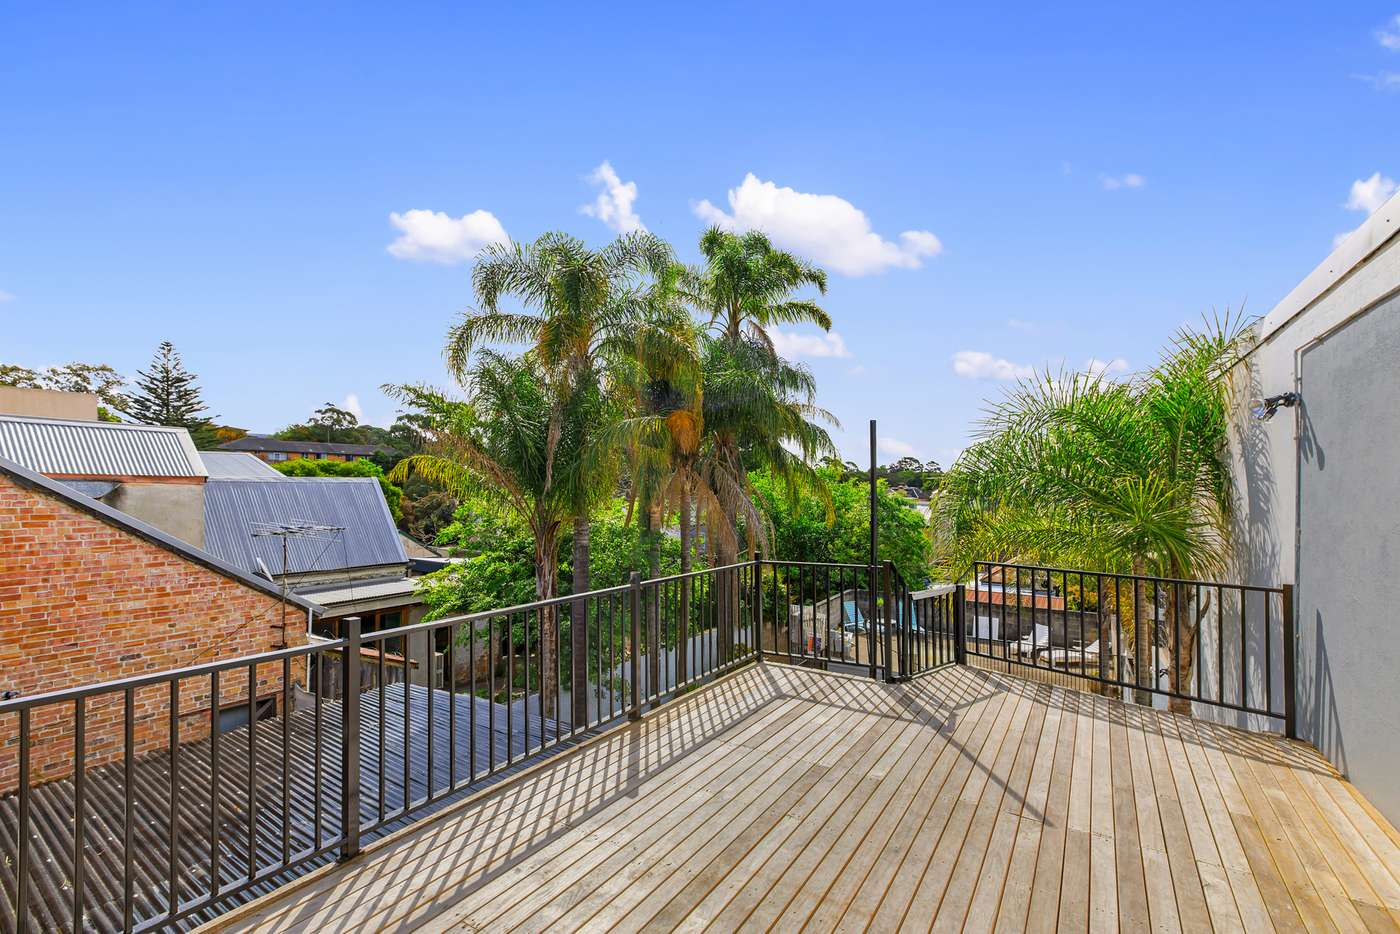 Main view of Homely apartment listing, 1/255 Stanmore Rd (ENTER VIA MERTON LANE), Stanmore NSW 2048